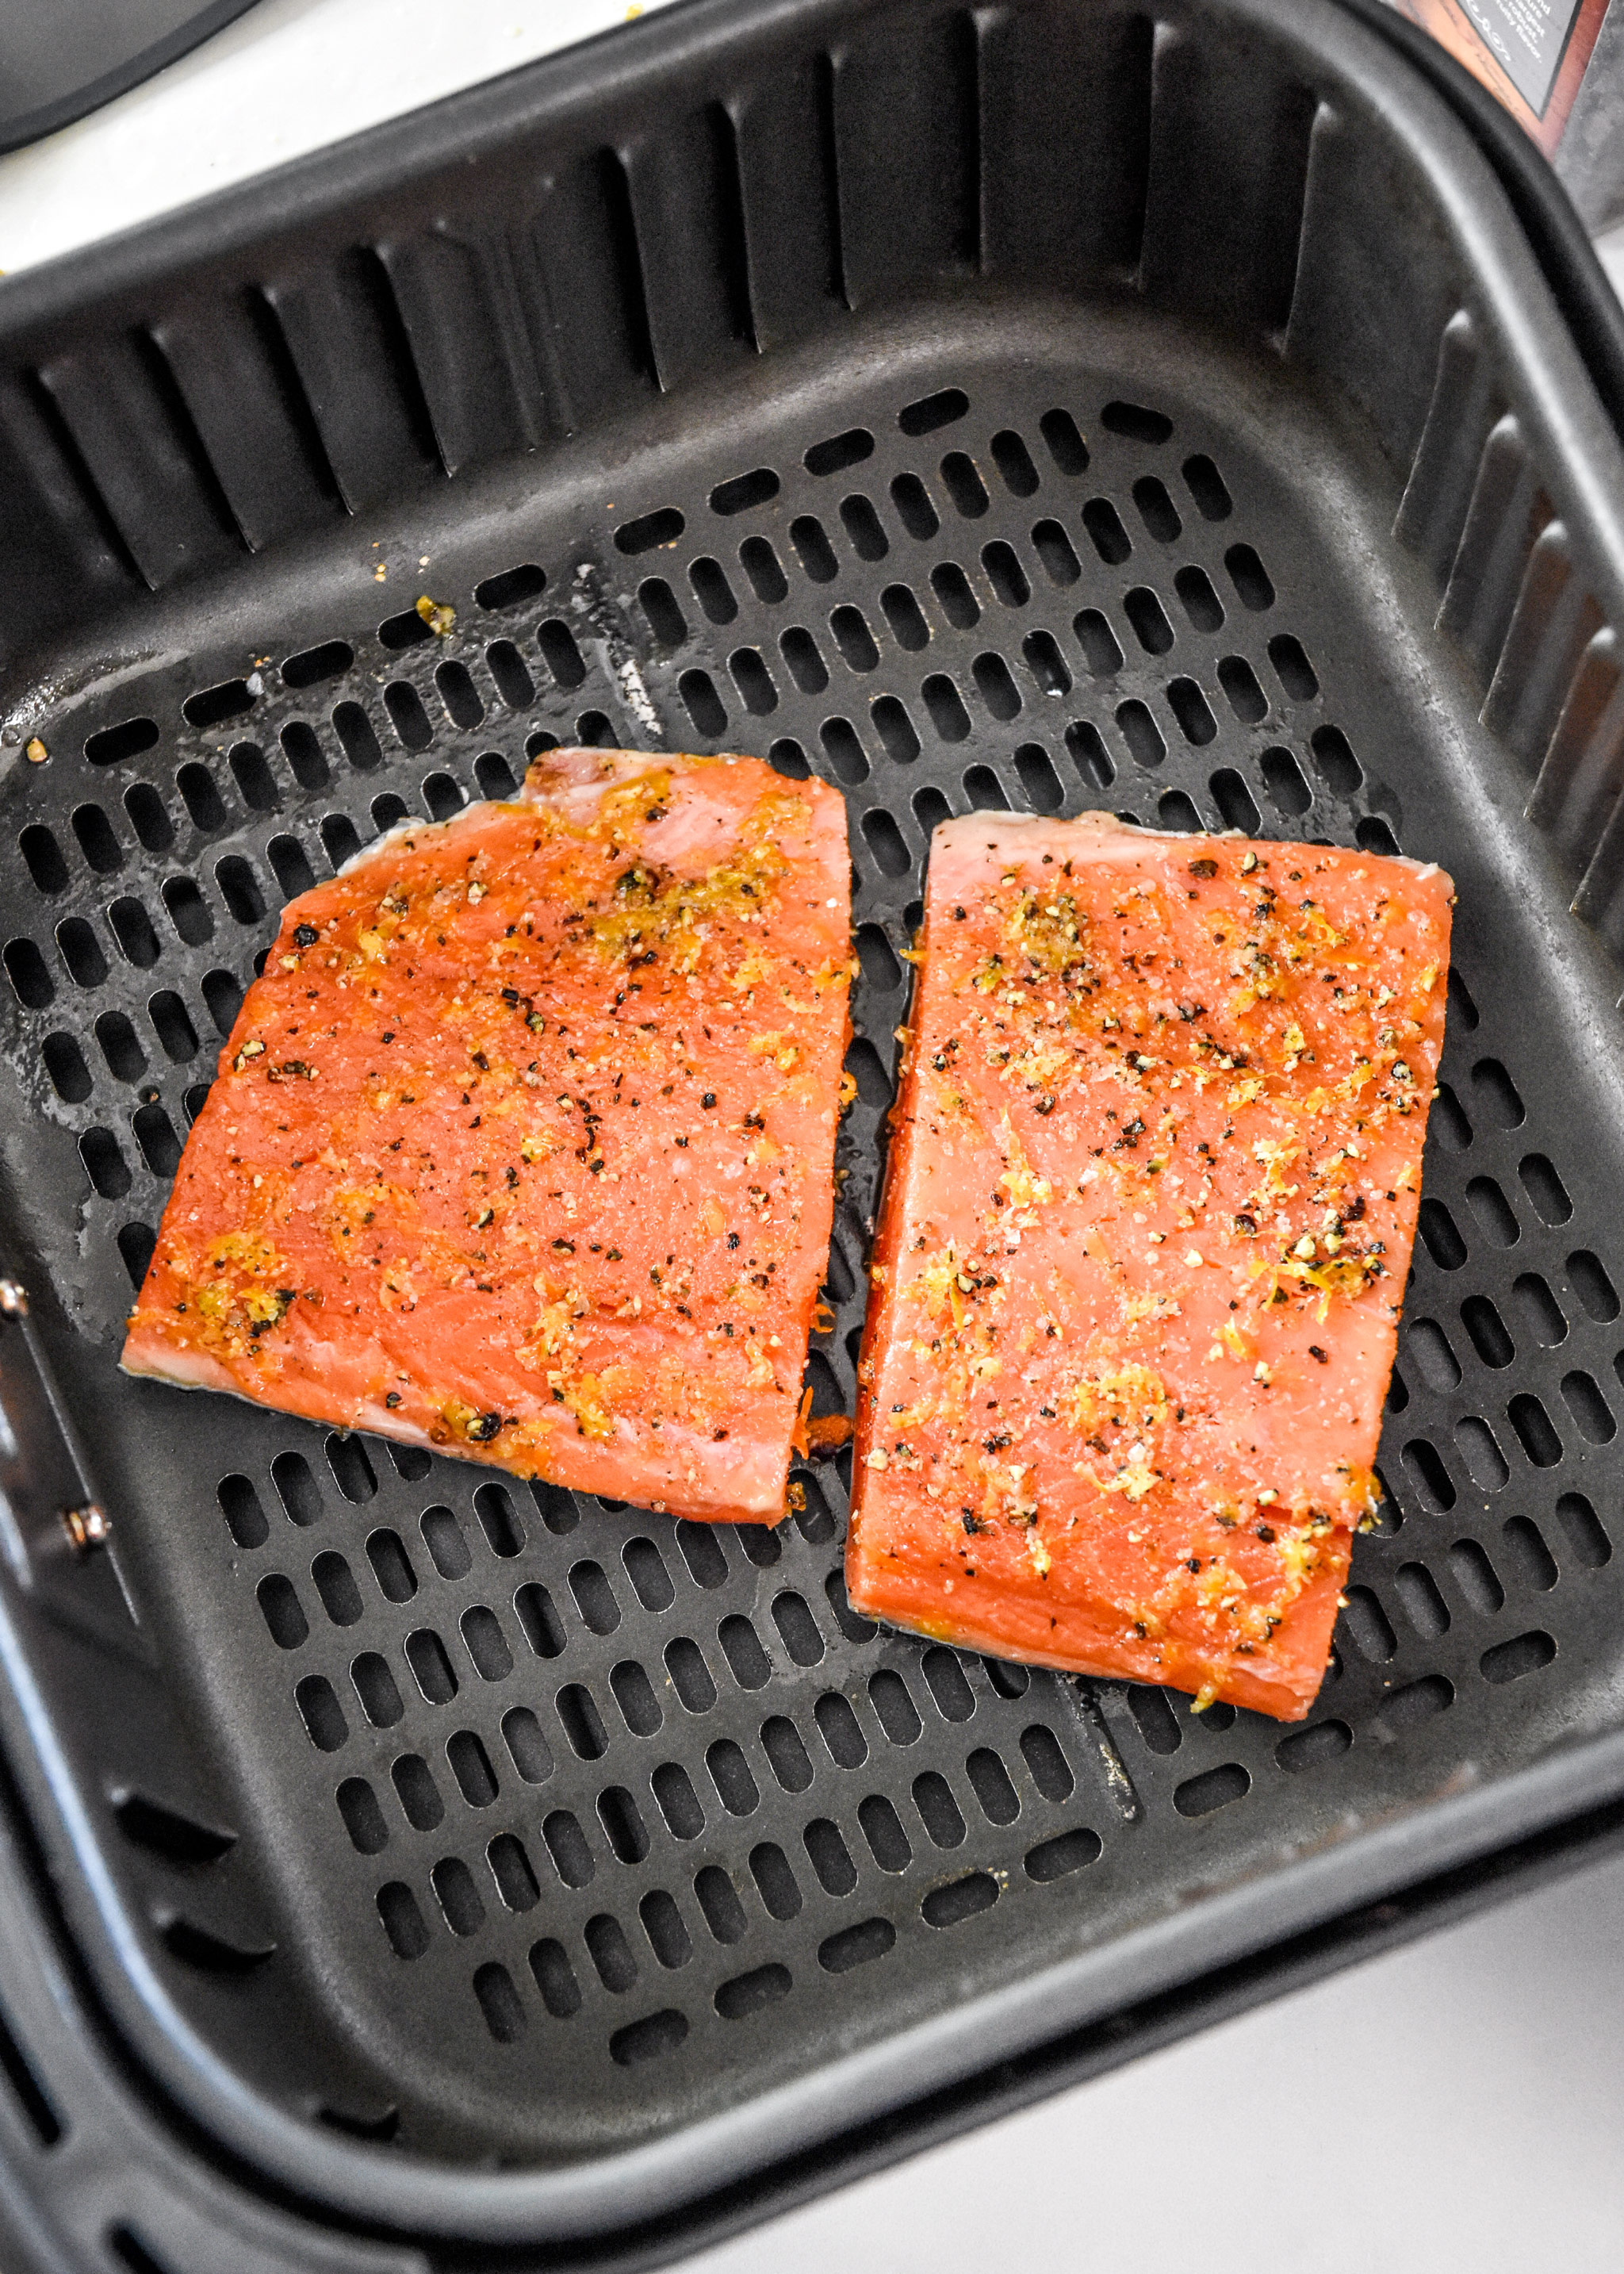 raw salmon in the air fryer basket about to be cooked.